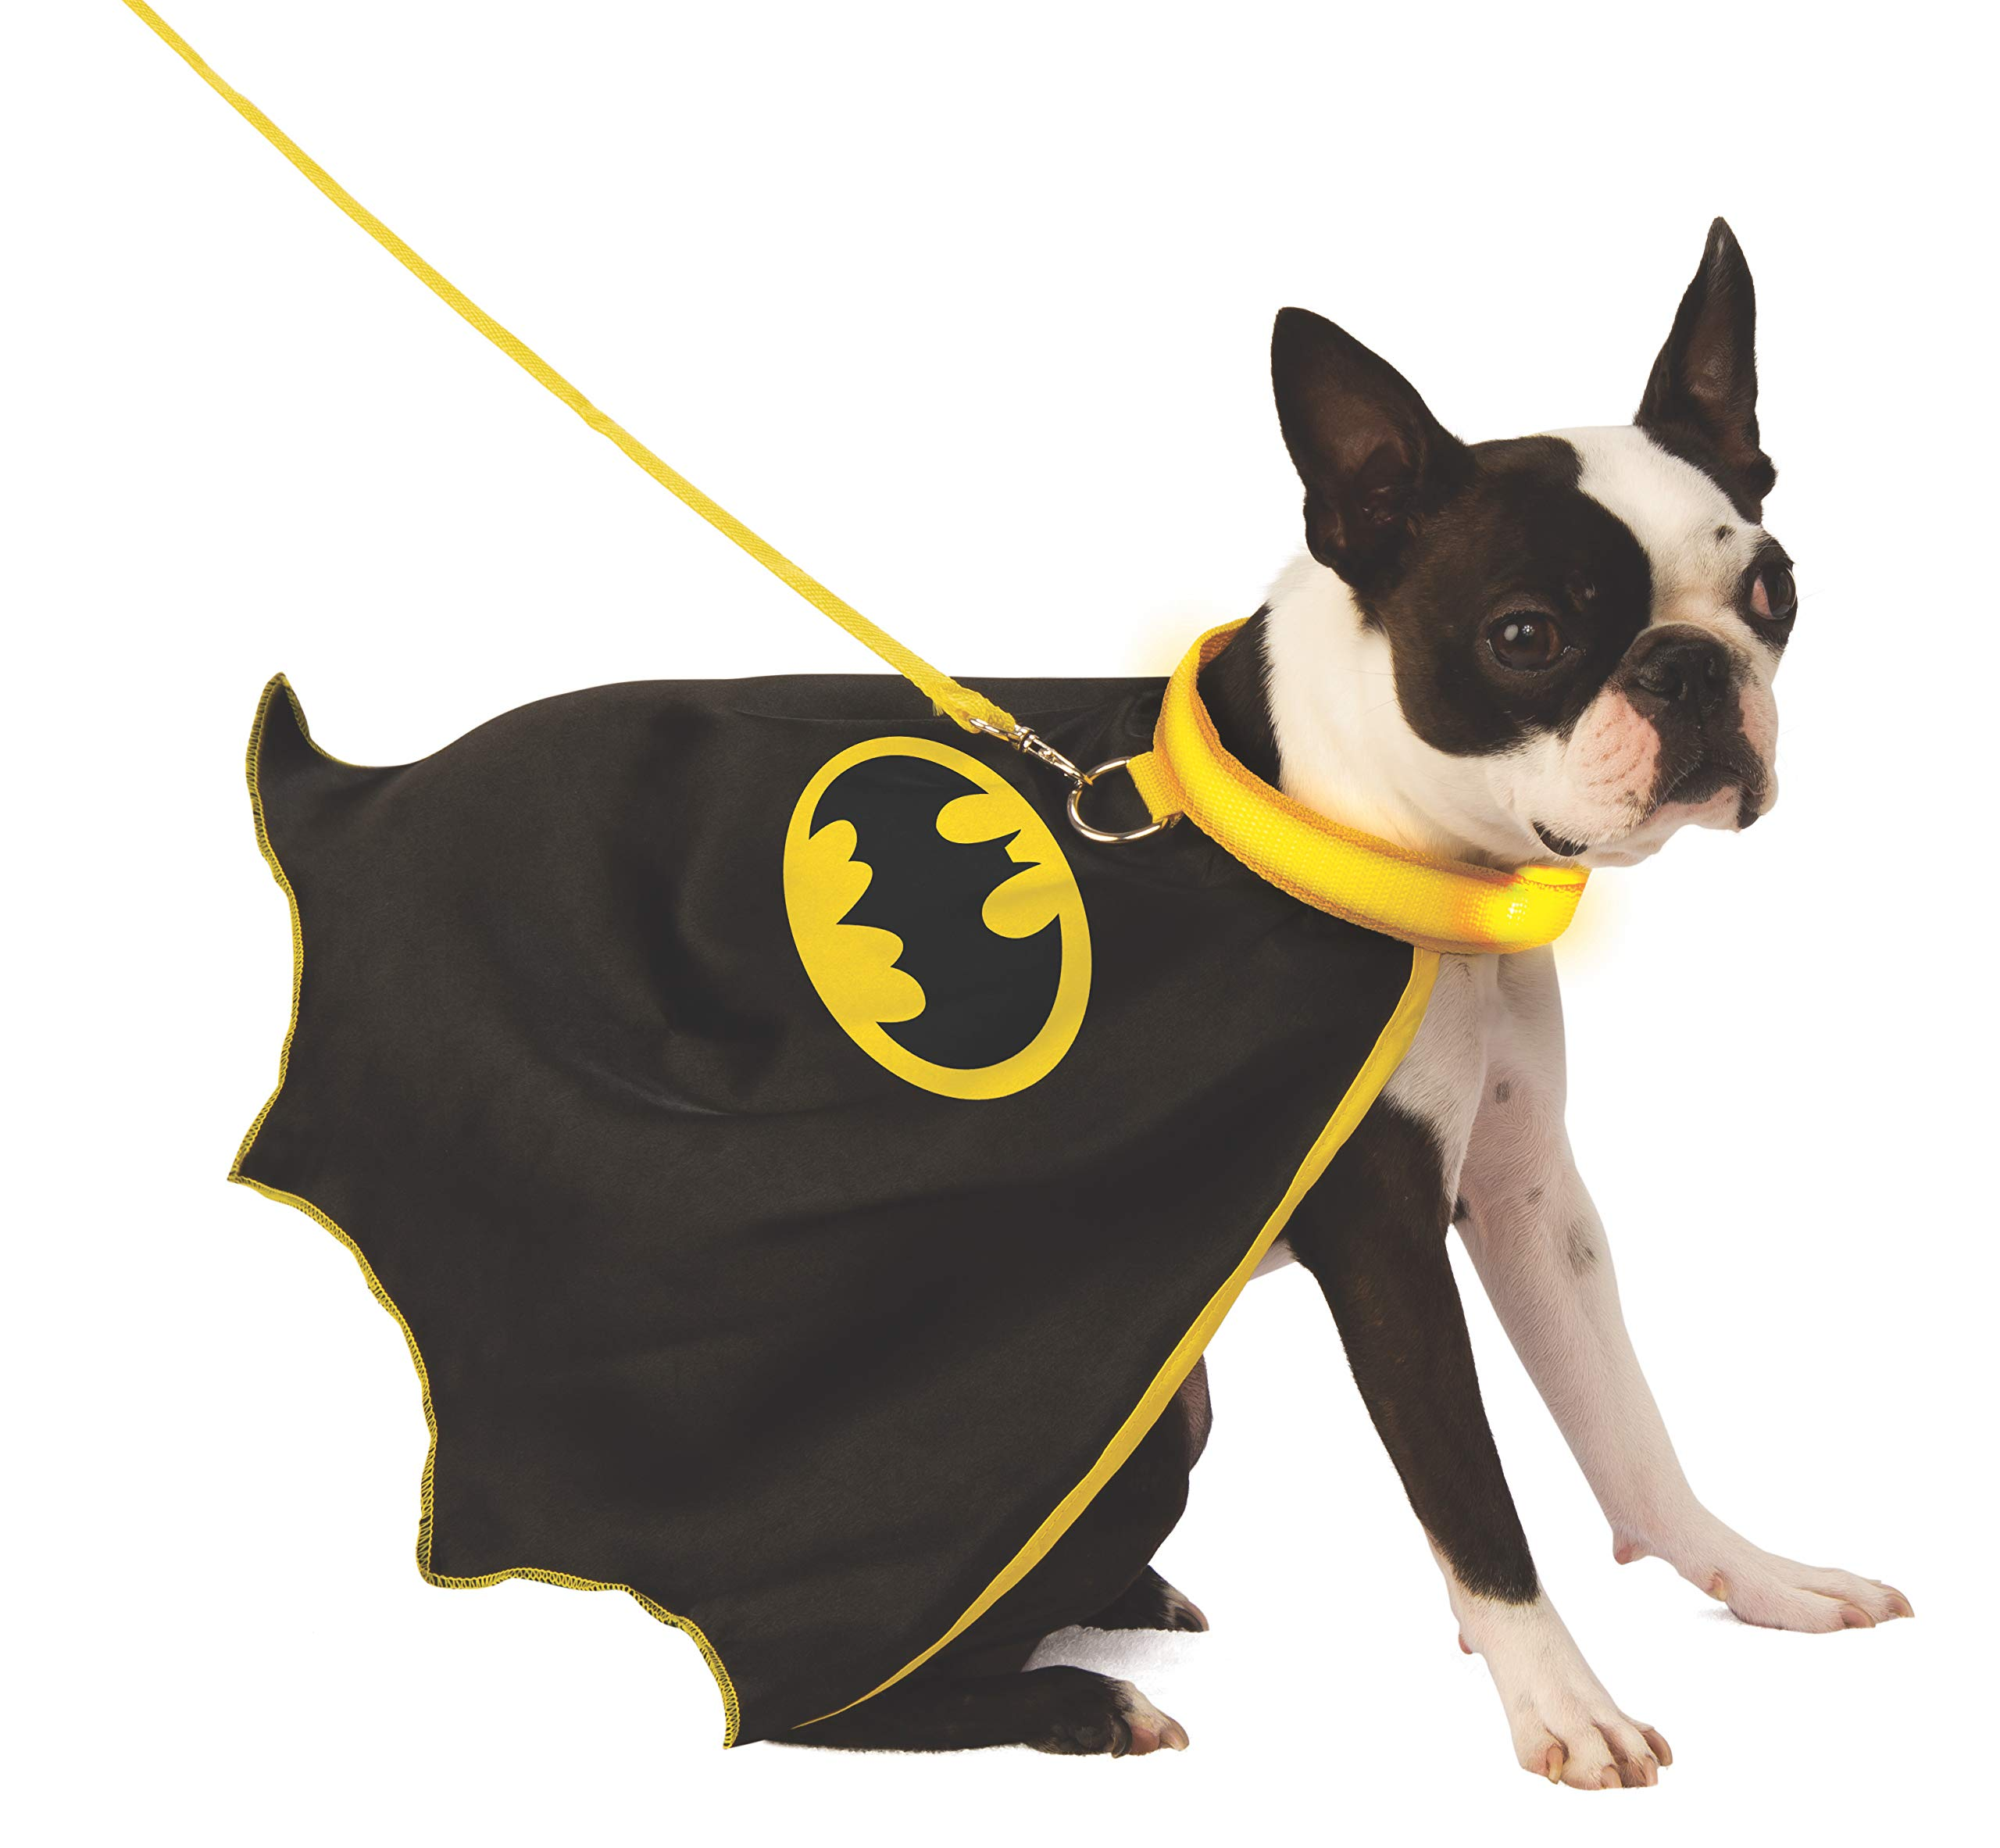 DC Batman Pet Cape with Light-Up Collar & Leash, Medium by Rubie's